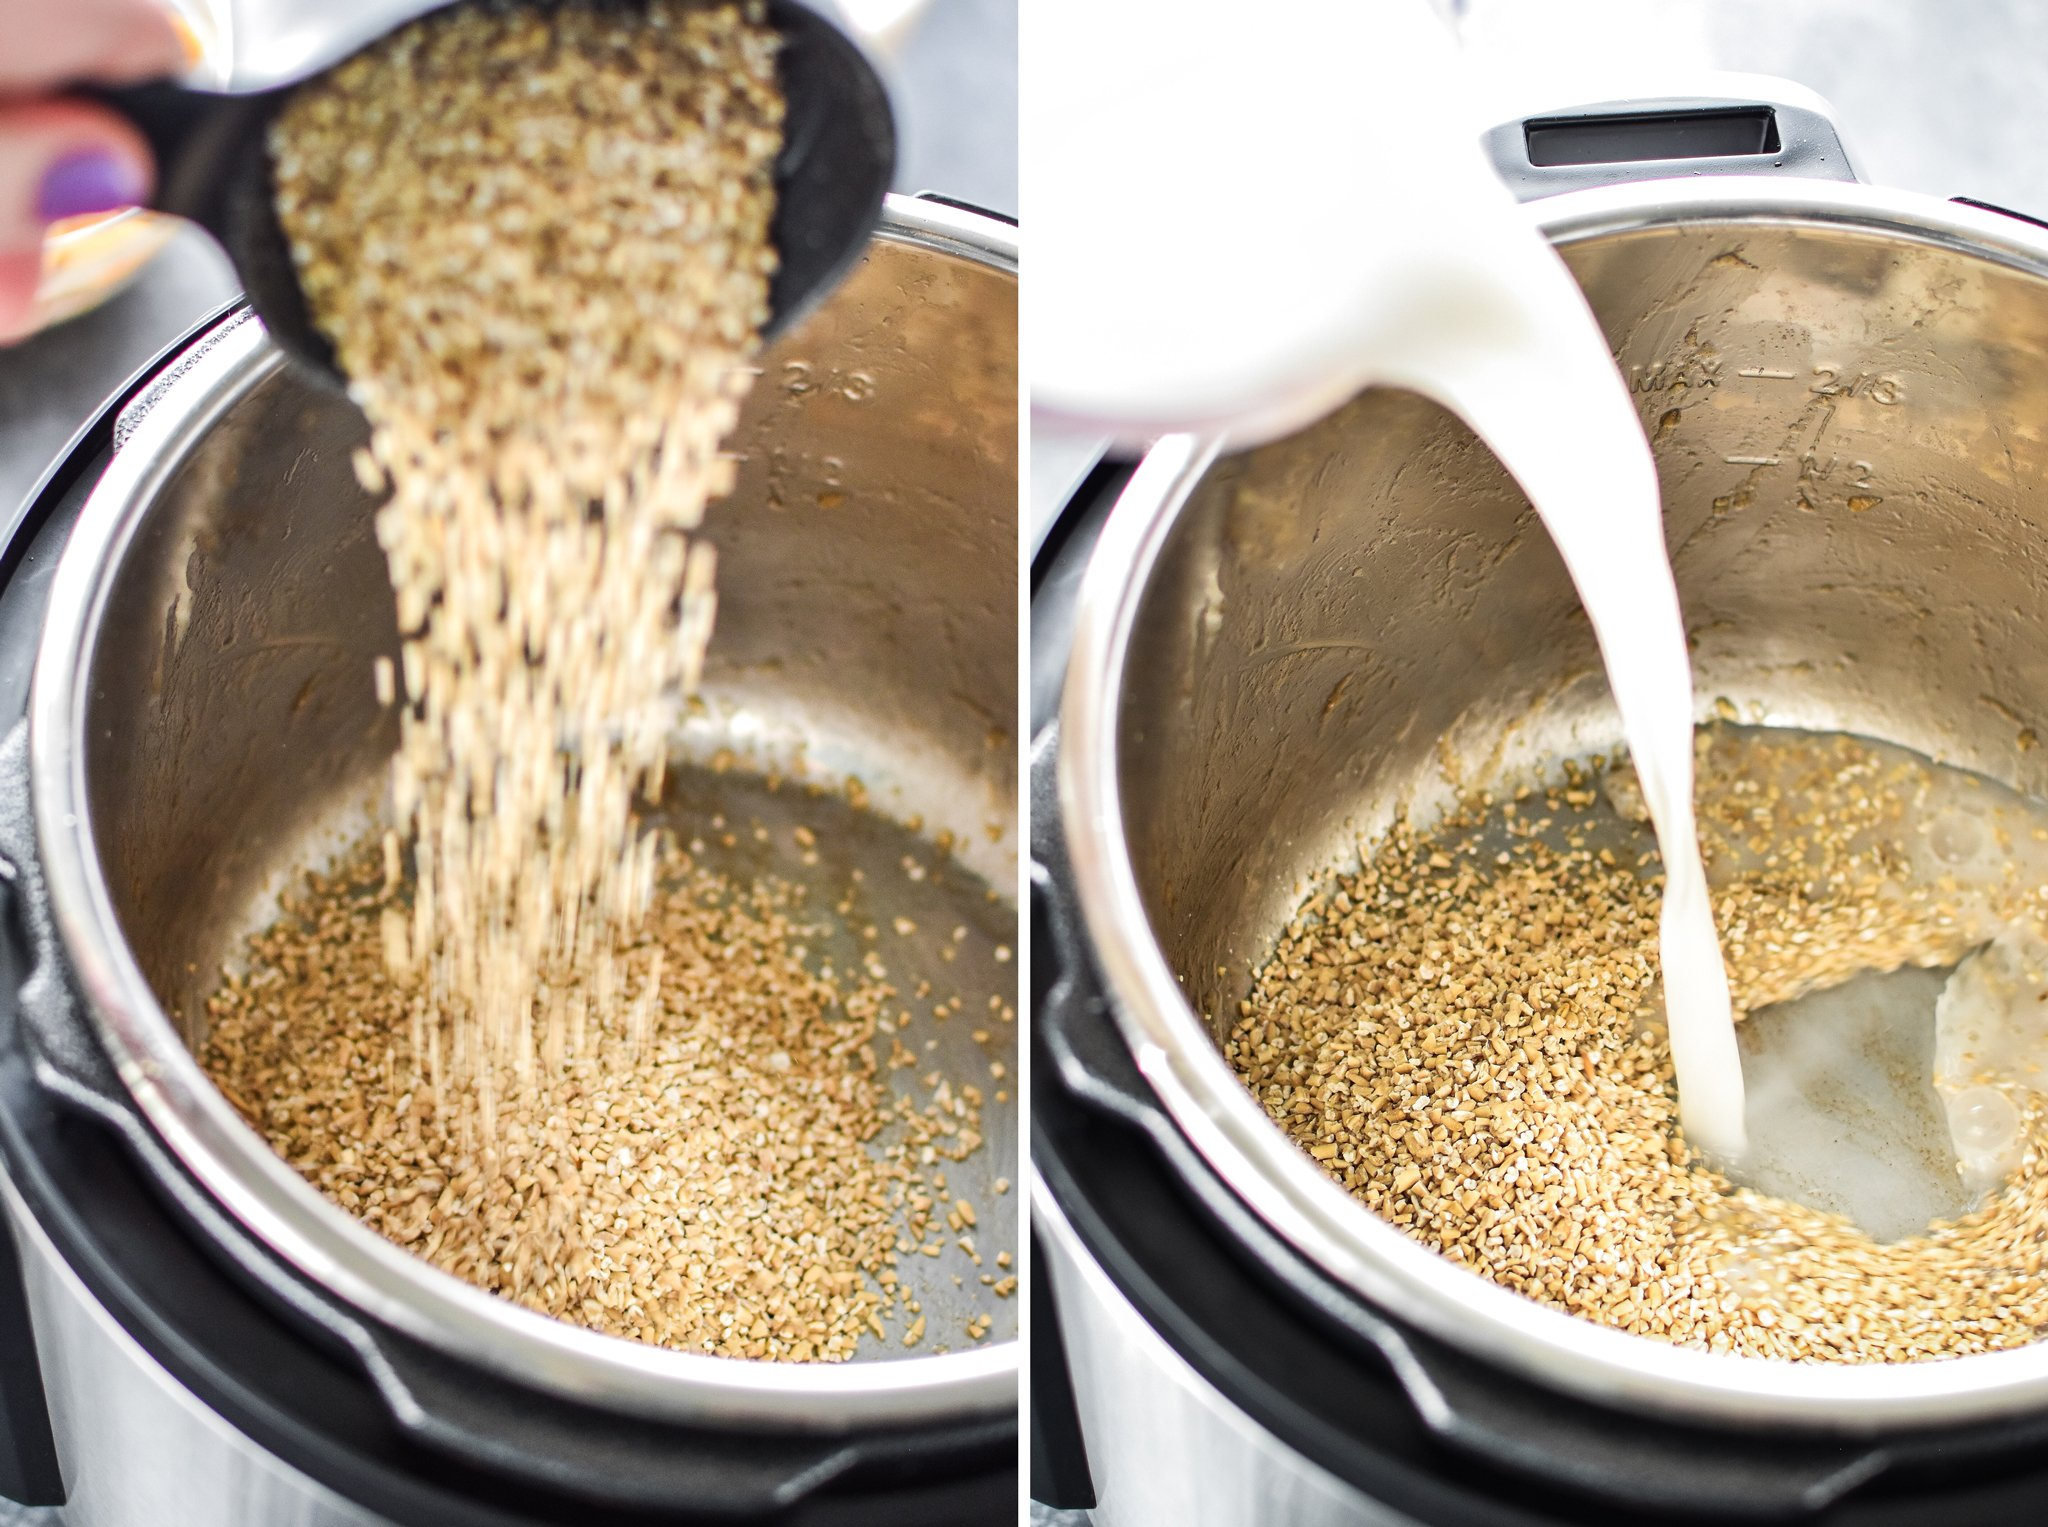 Left: Pouring steel cut oats into the Instant Pot. Right: Pouring milk and water liquid into the Instant Pot.